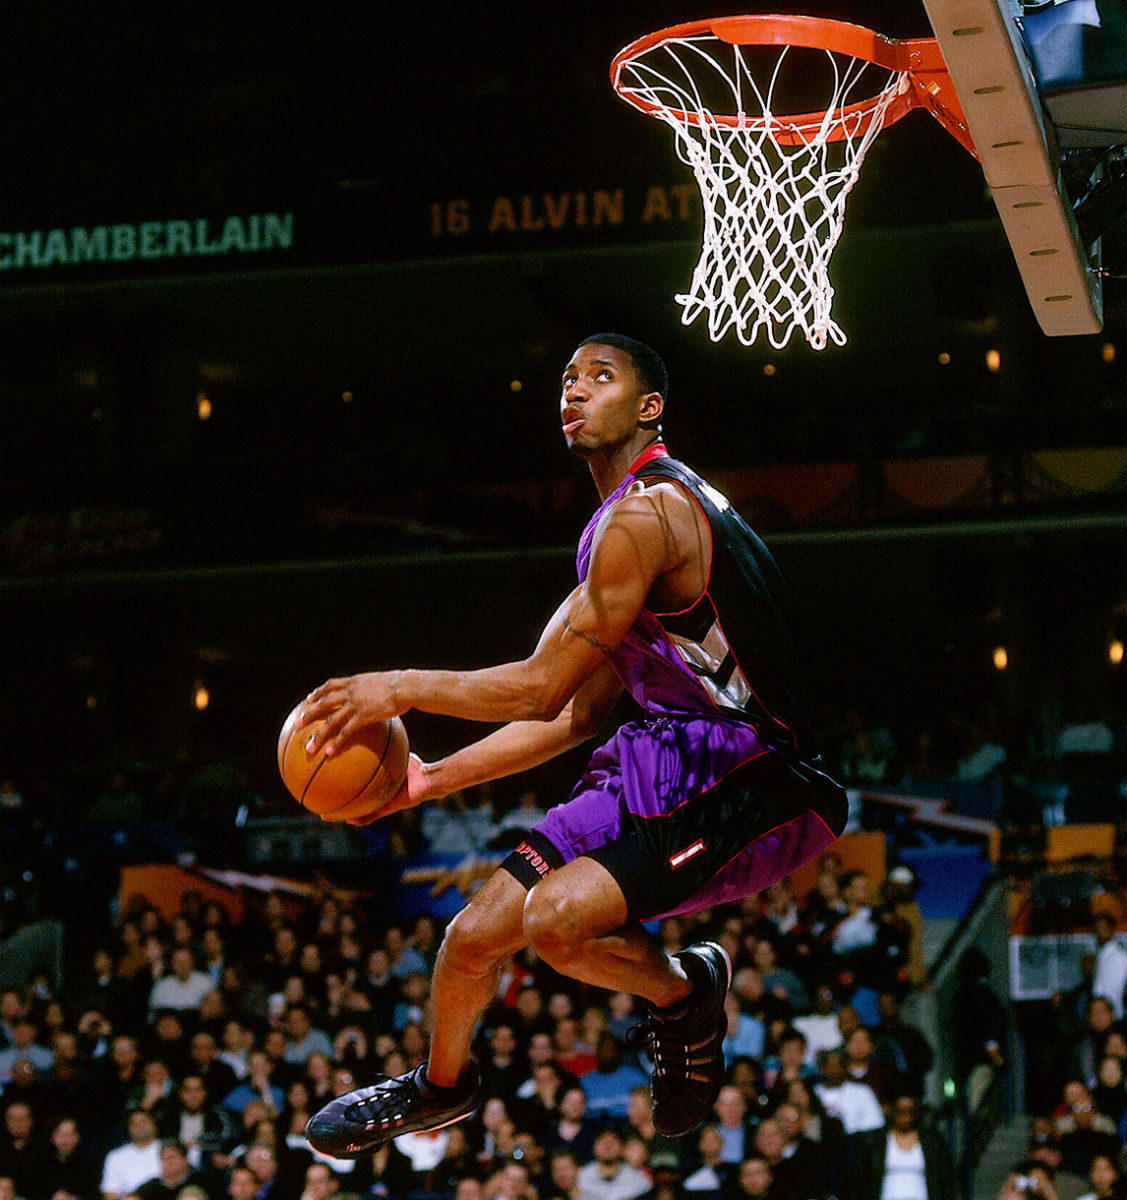 Tracy McGrady Wears the adidas Lithicon in the 2000 Dunk Contest